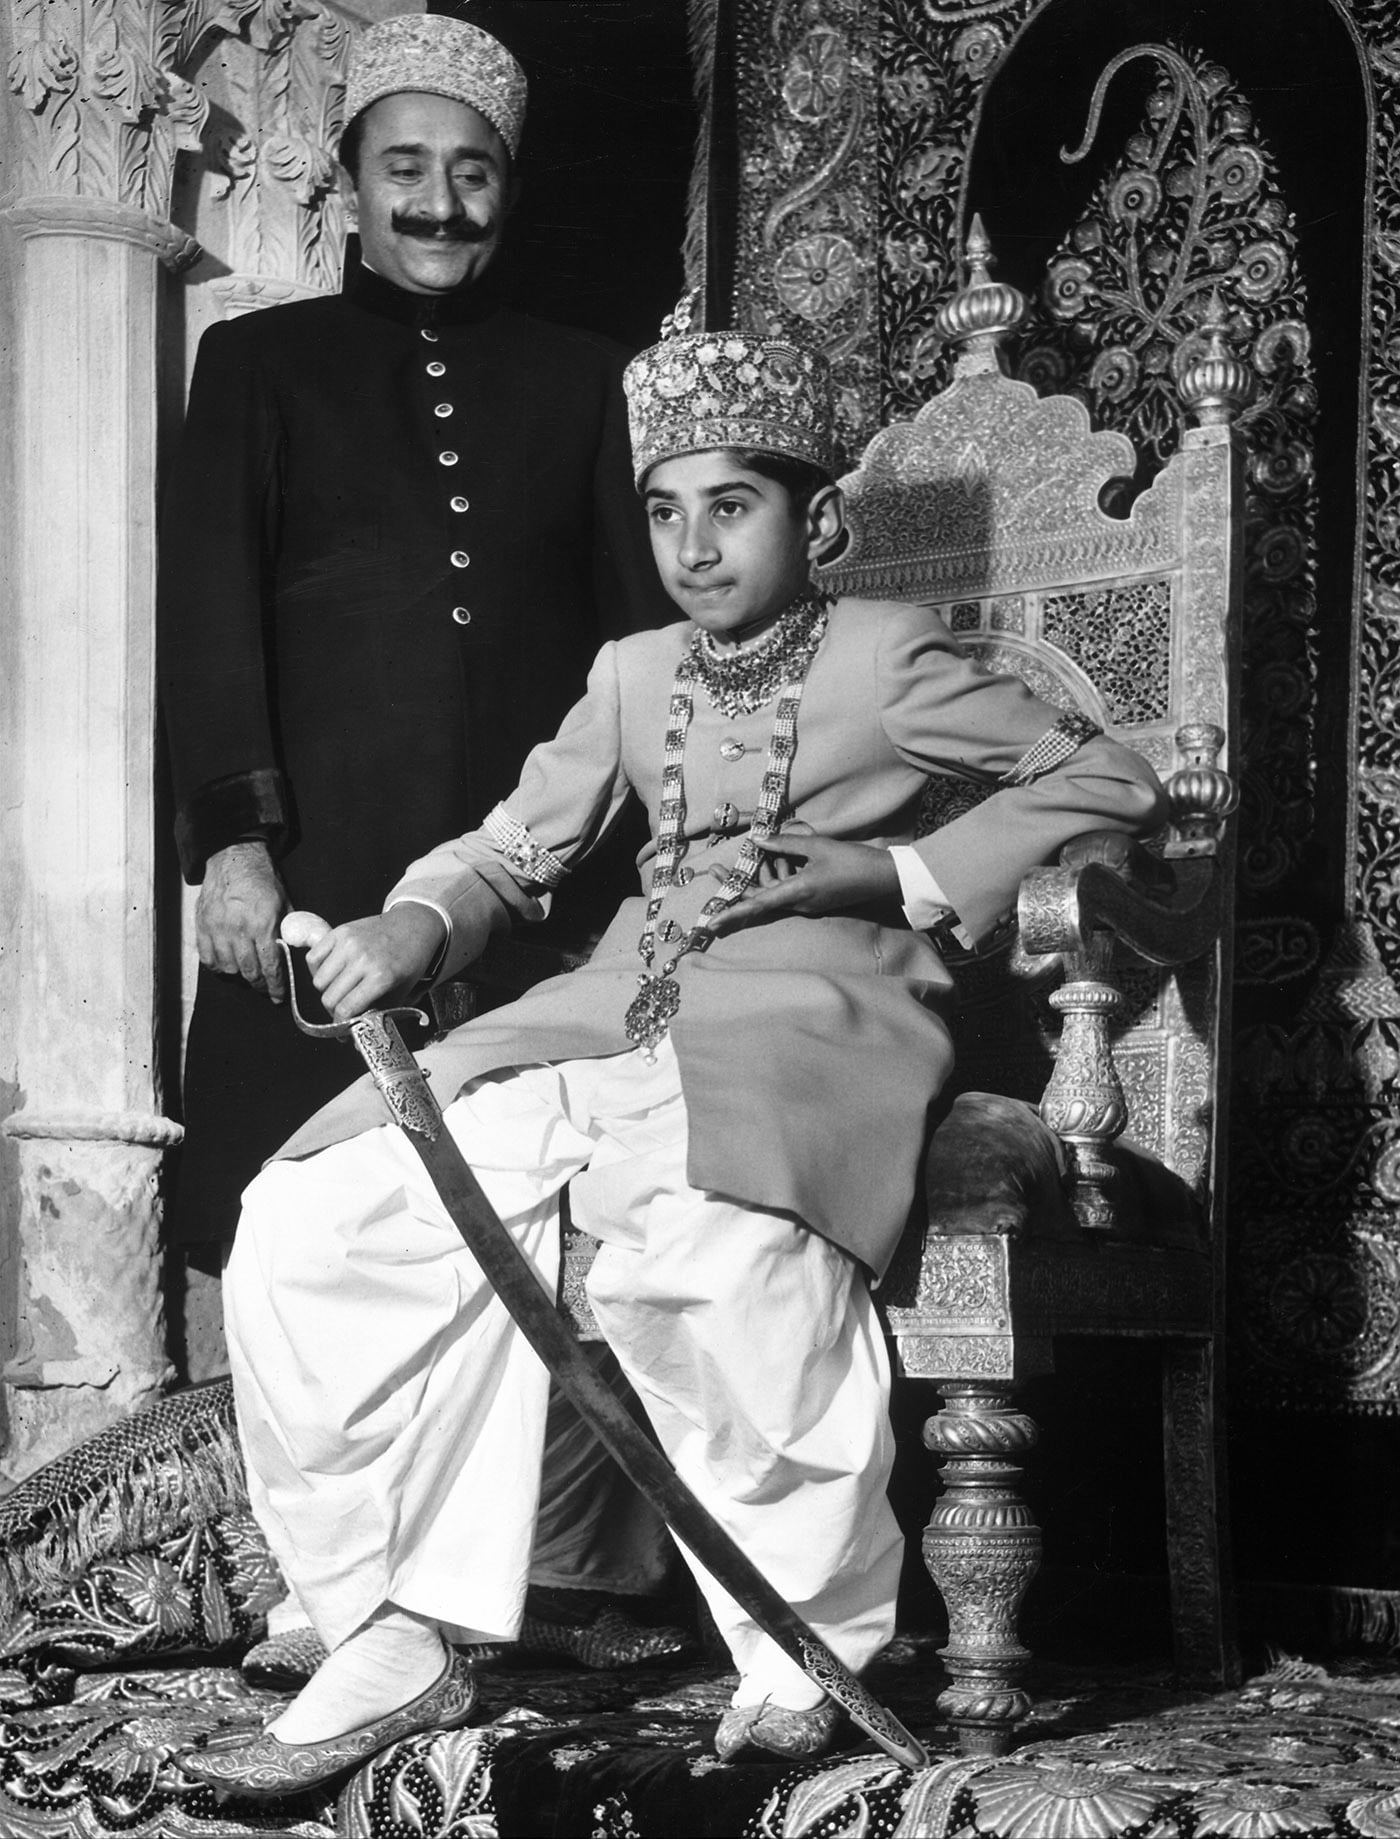 "Mir George Ali Murad Khan Talpur II – ""the boy prince of Khairpur"" – at Faiz Mahal, Khairpur, in December 1947. He is seated on his throne holding a sword, while his Regent, Mir Ghulam Hussain Khan Talpur, looks on.— Courtesy Mir of Khairpur Family Archive"